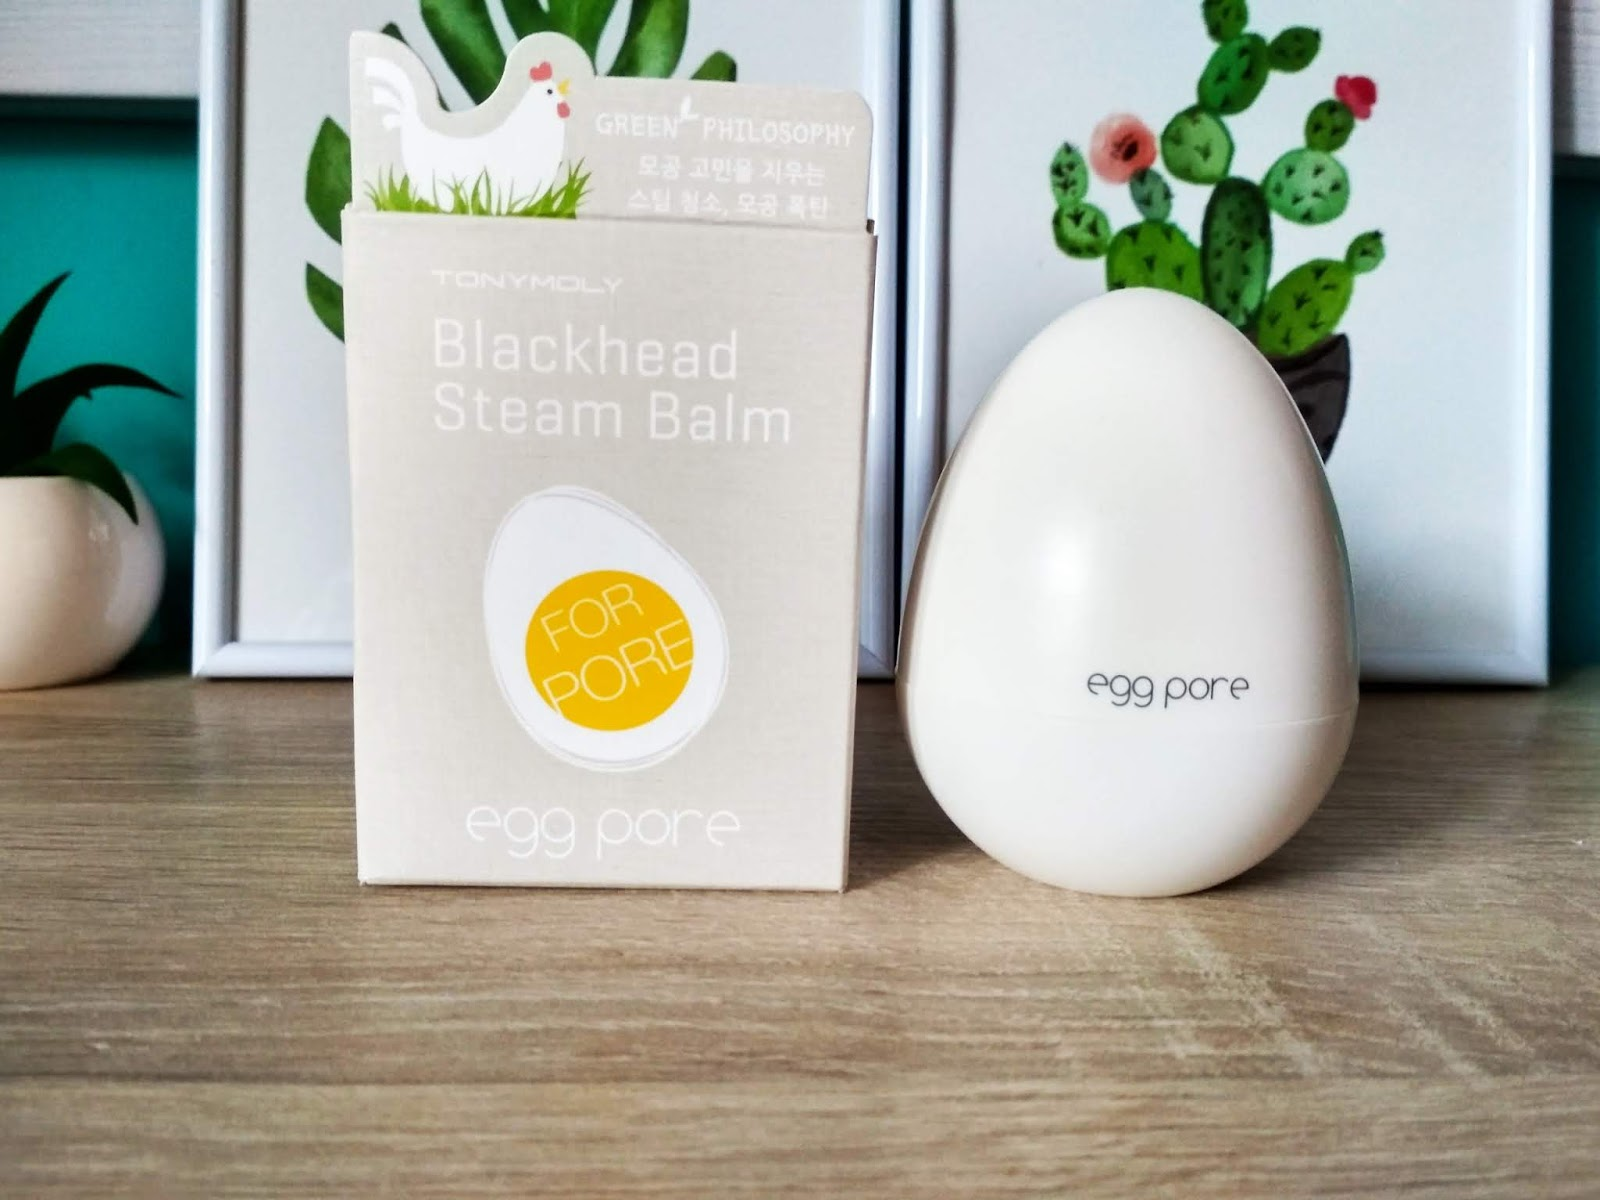 Recenzja - Tony Moly blackhead steam balm